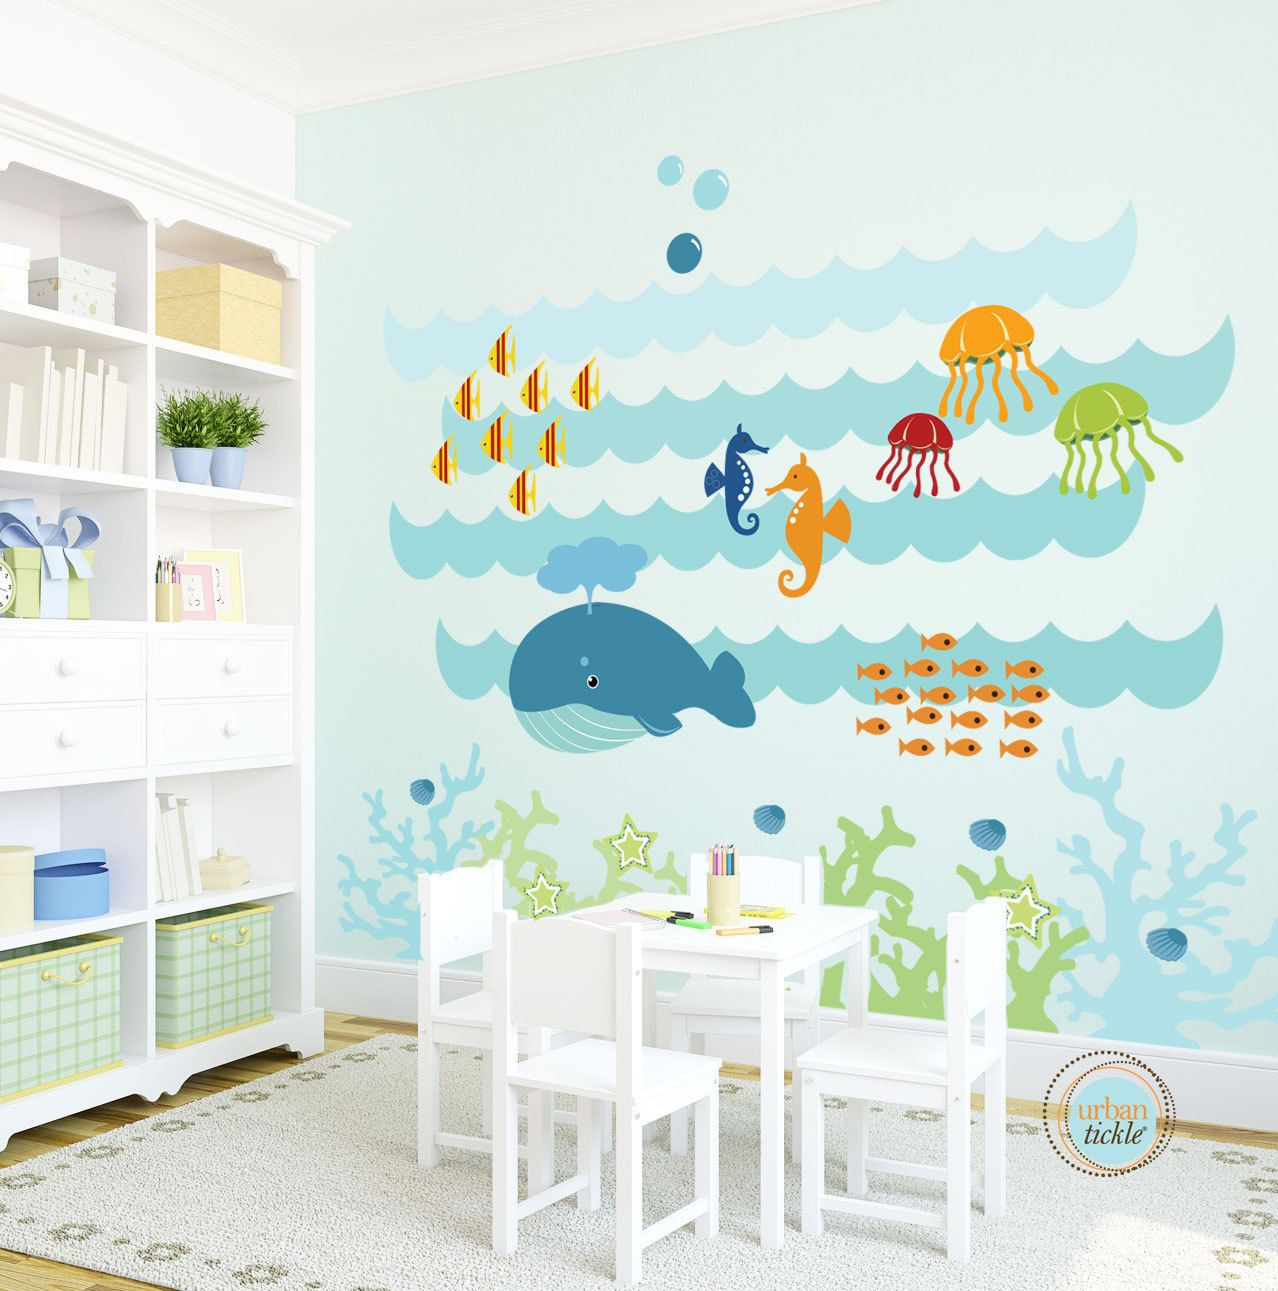 Kids room wall decor stickers - Kids Wall Decal Under The Sea Extra Large Nursery By Urbantickle Kids Wall Decalswall